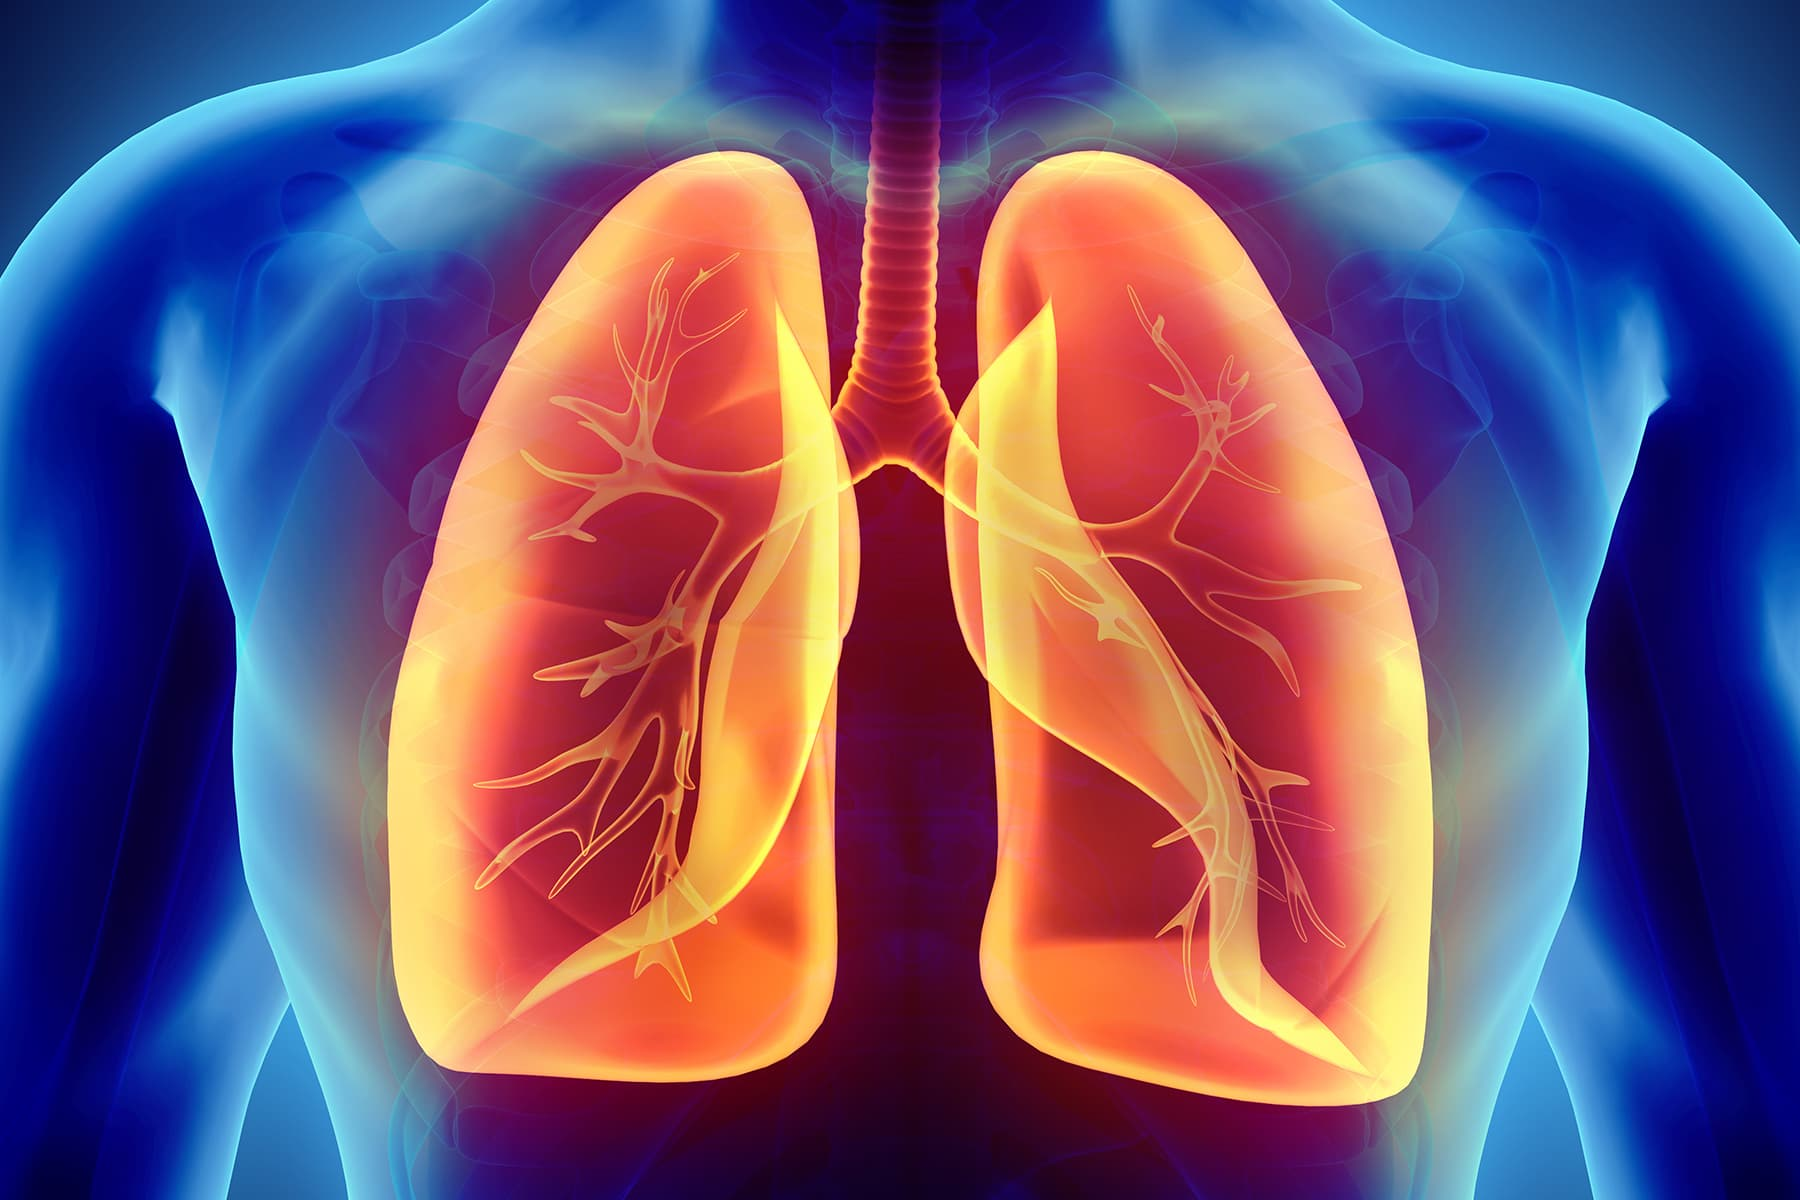 photo illustration of lungs